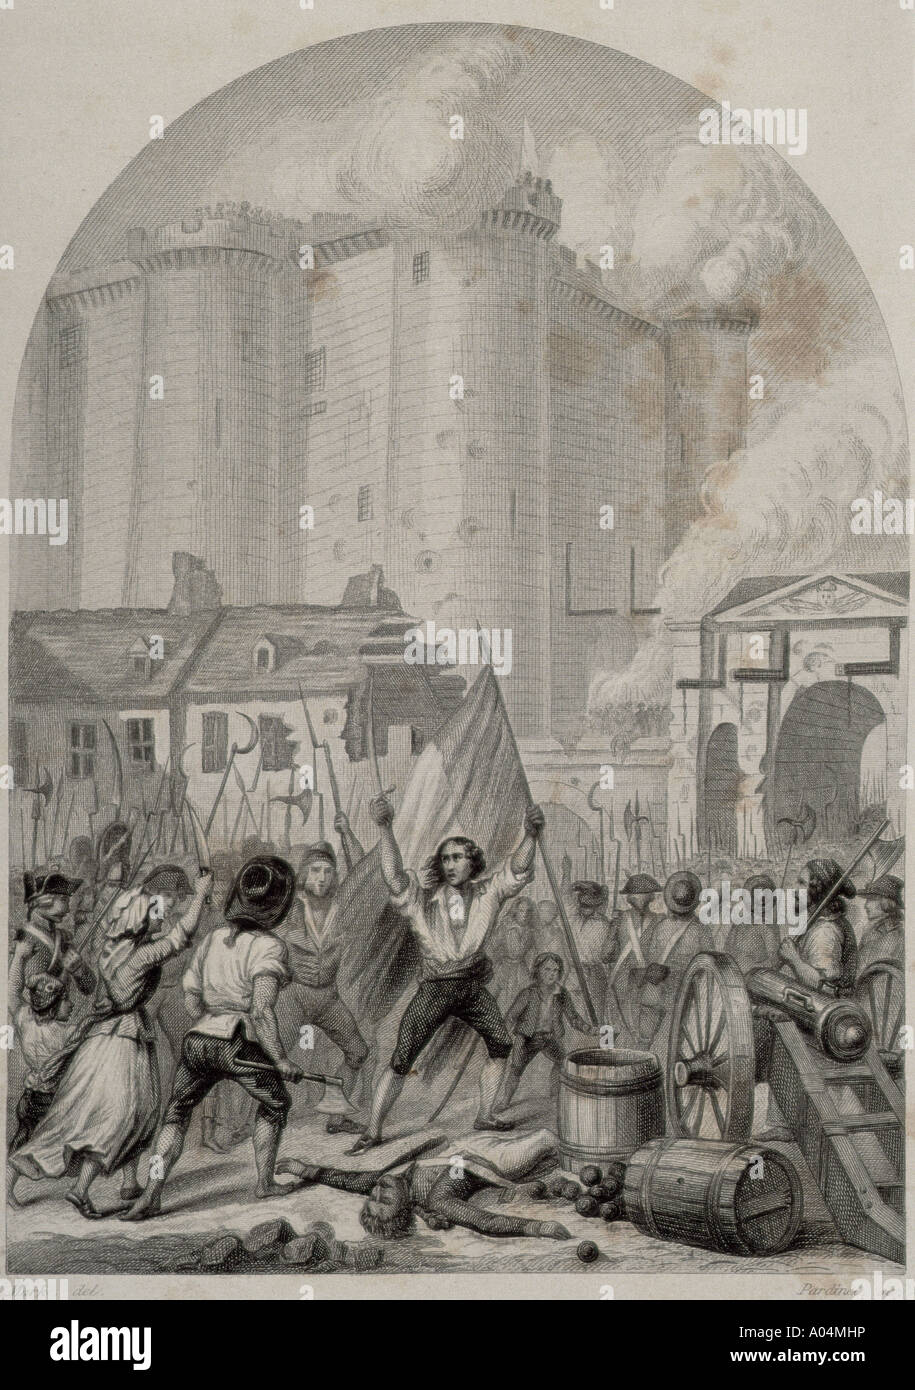 french revolution of 1789 was a The radical phase of the french revolution, or the reign of terror, is currently analyzed as either a reaction to specific events, such as foreign wars and internal counterrevolution, or as the logical consequence of the ideologies of 1789.